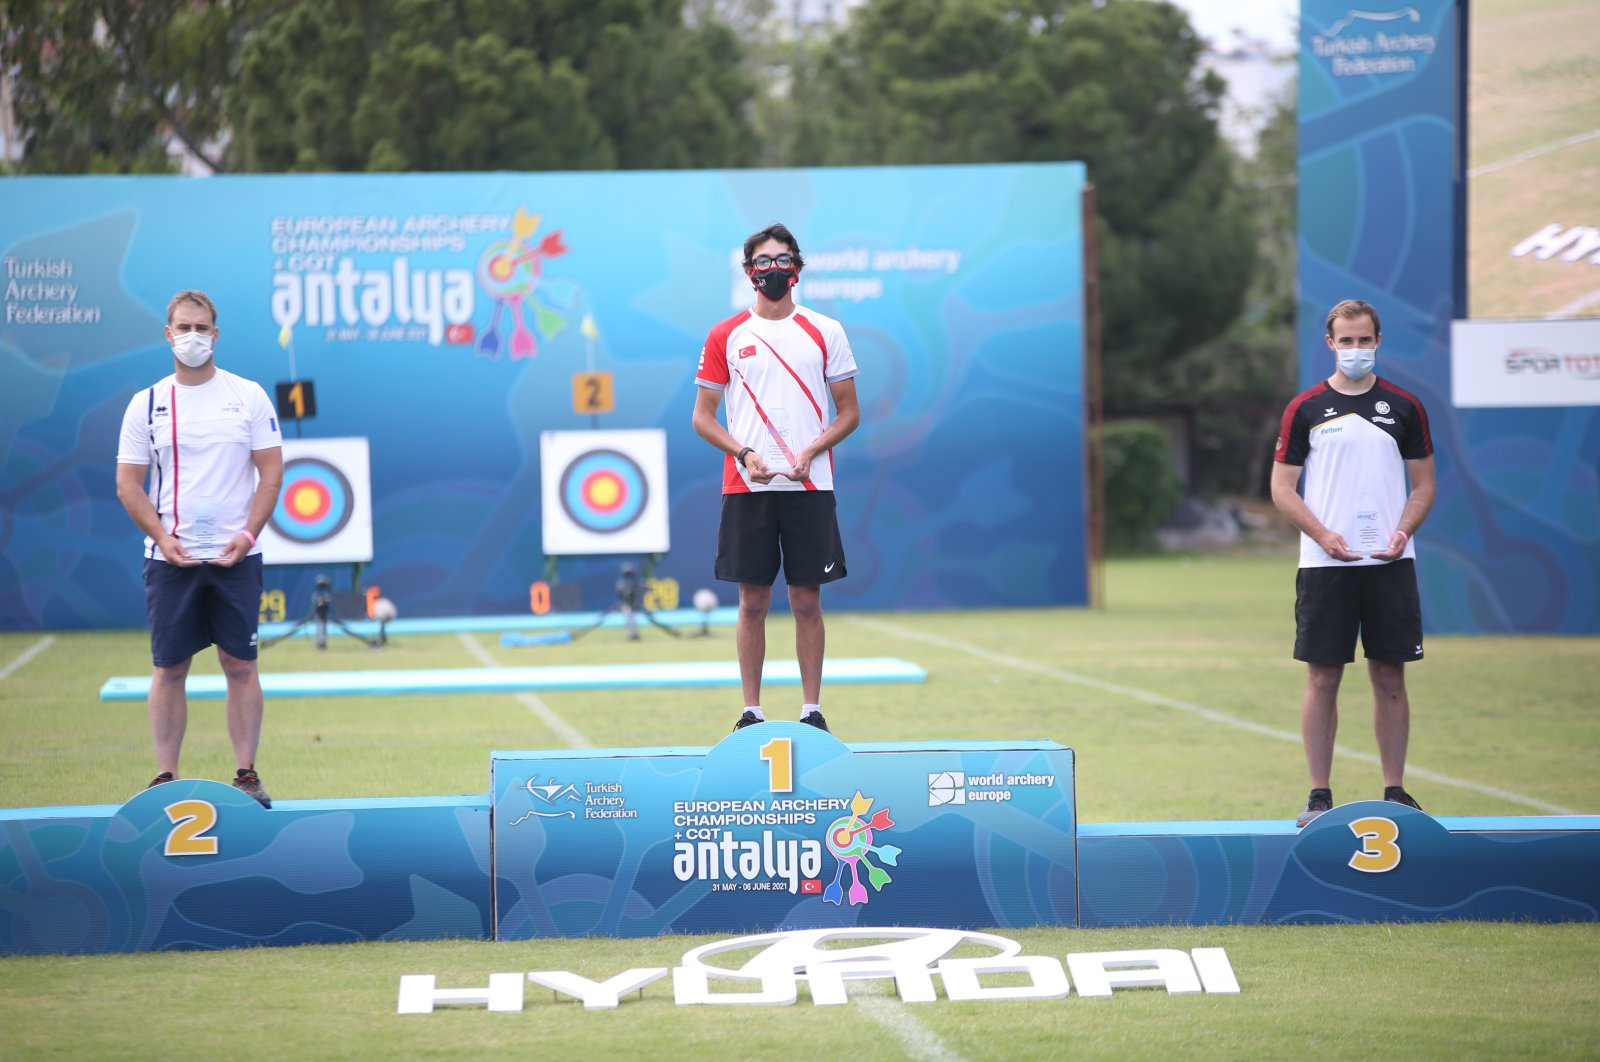 Mete Gazoz (C) holds his gold medal after winning the European Archery Championships in Antalya, Turkey, June 4, 2021. (AA Photo)